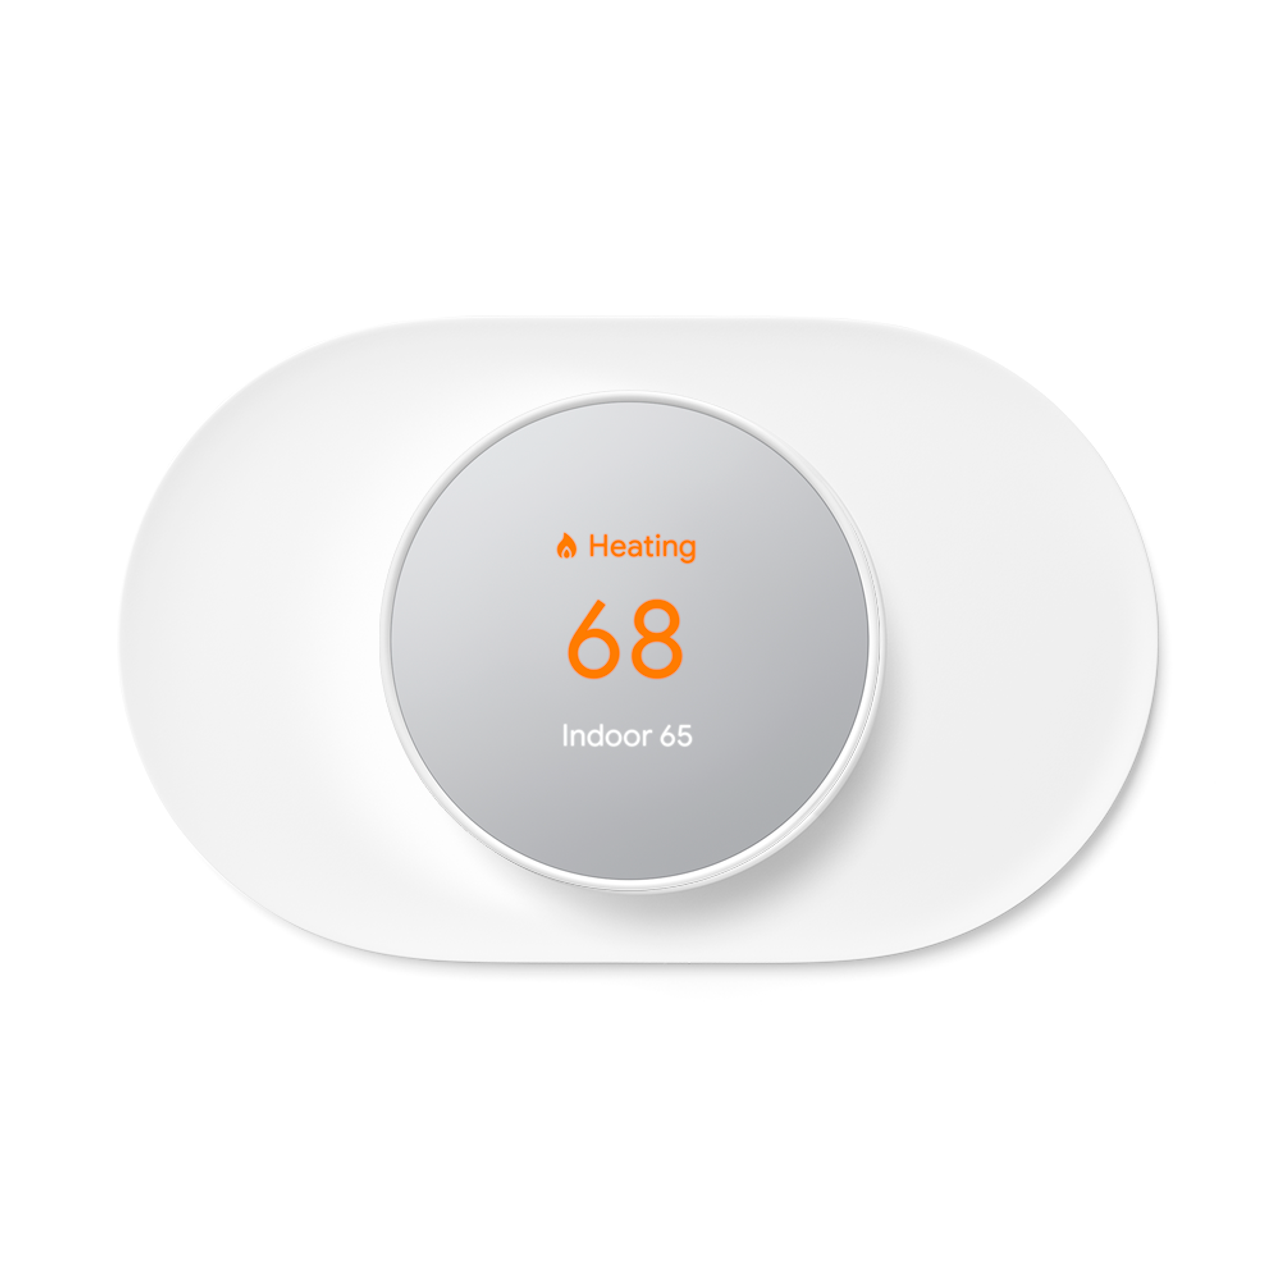 Snow white nest thermostat in matching trim kit